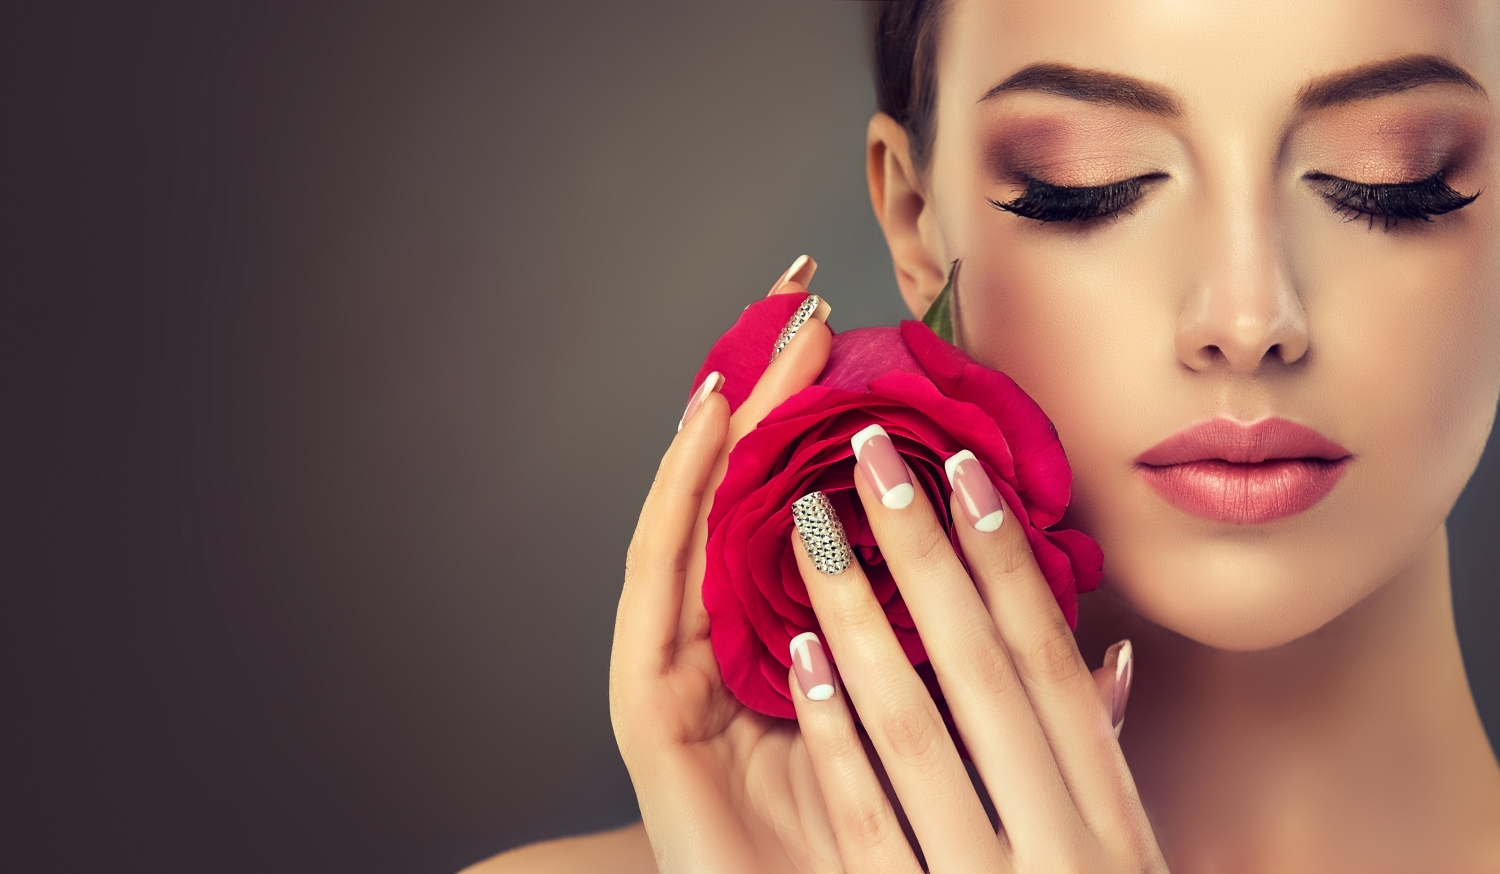 Woman with beautiful makeup and manicure